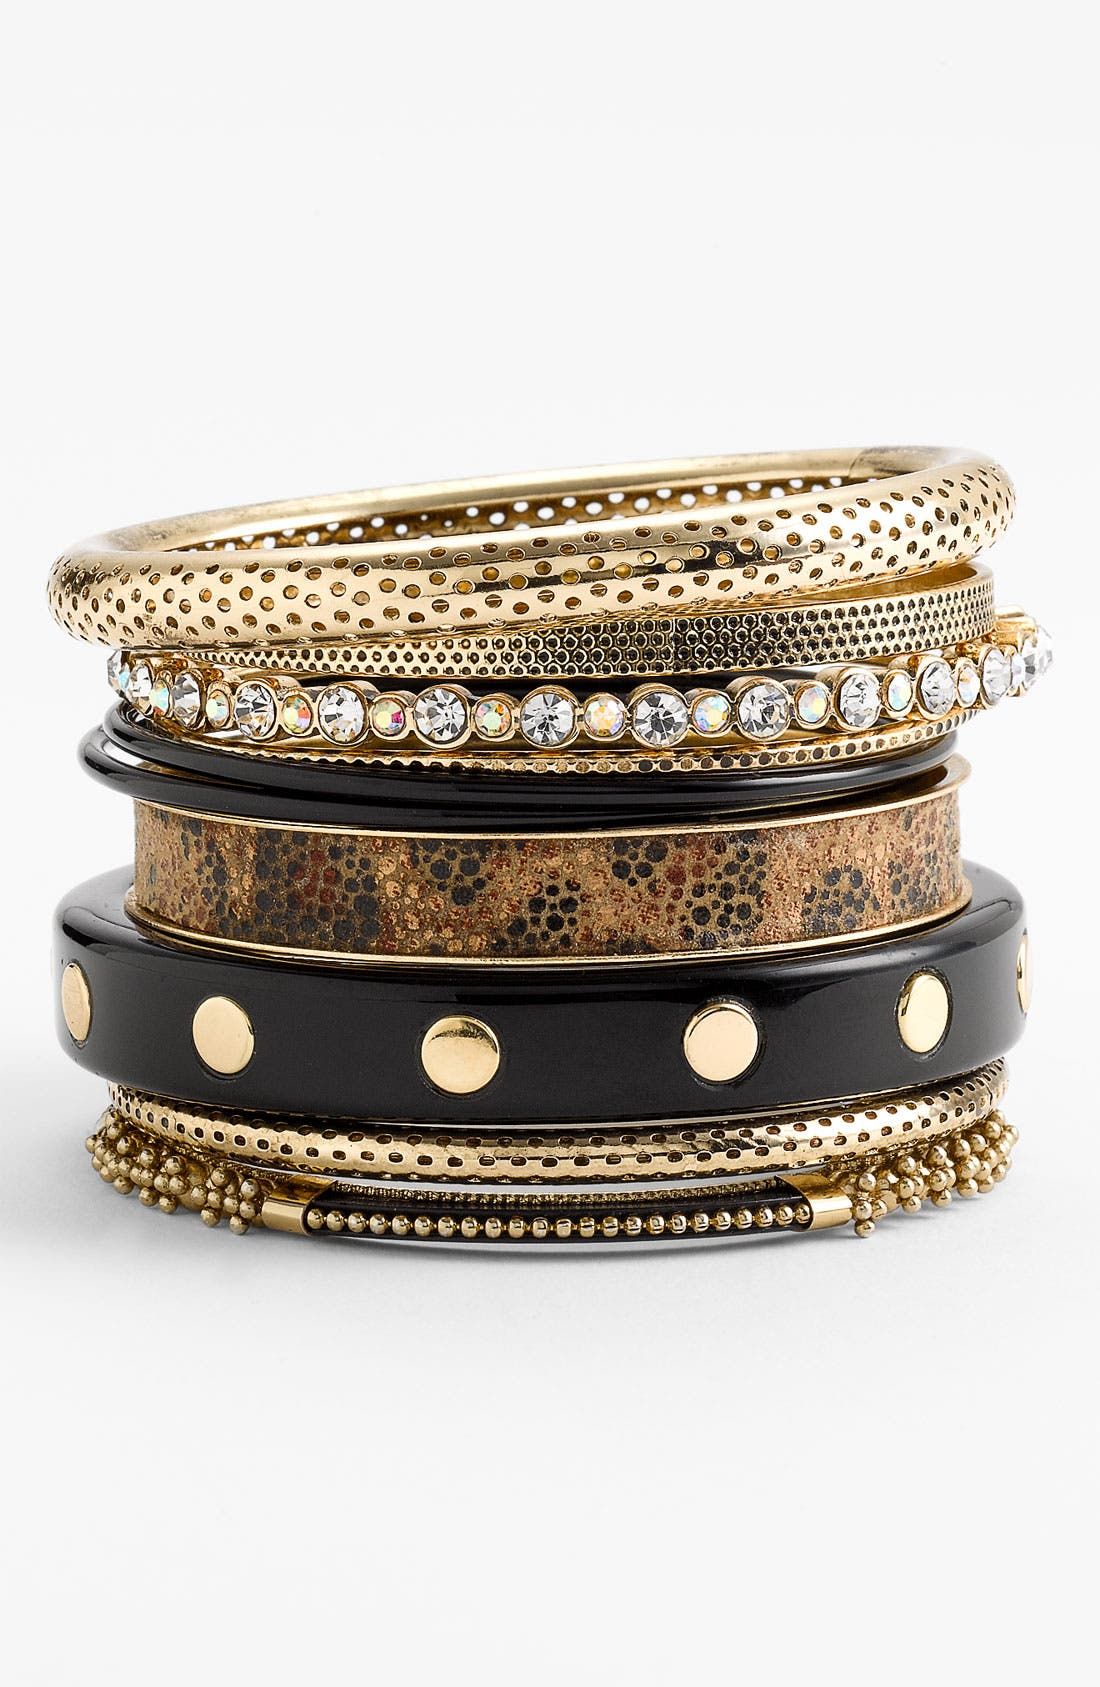 Main Image - Natasha Couture 'Leopard' Bangles (Set of 10)